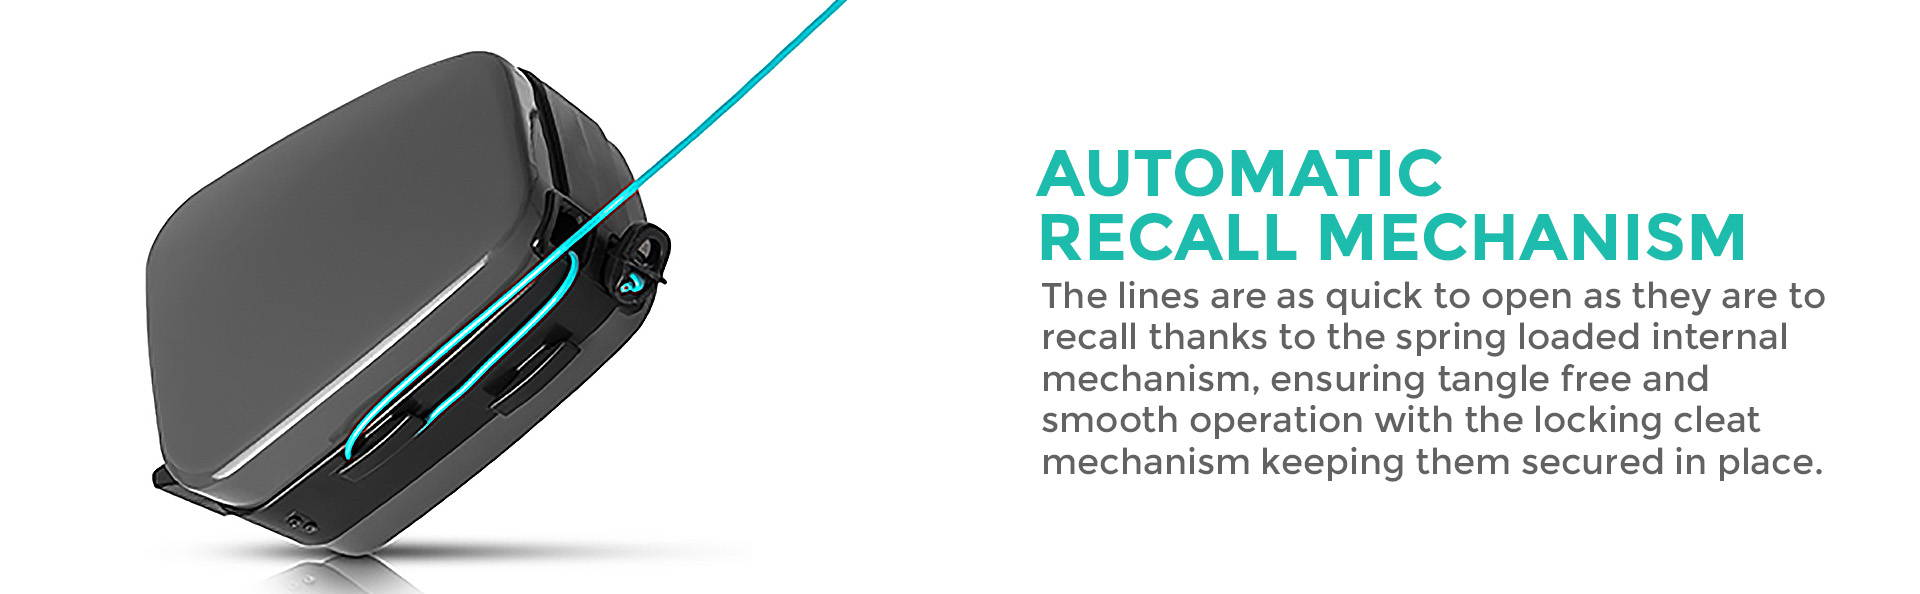 Automatic Recall Mechanism